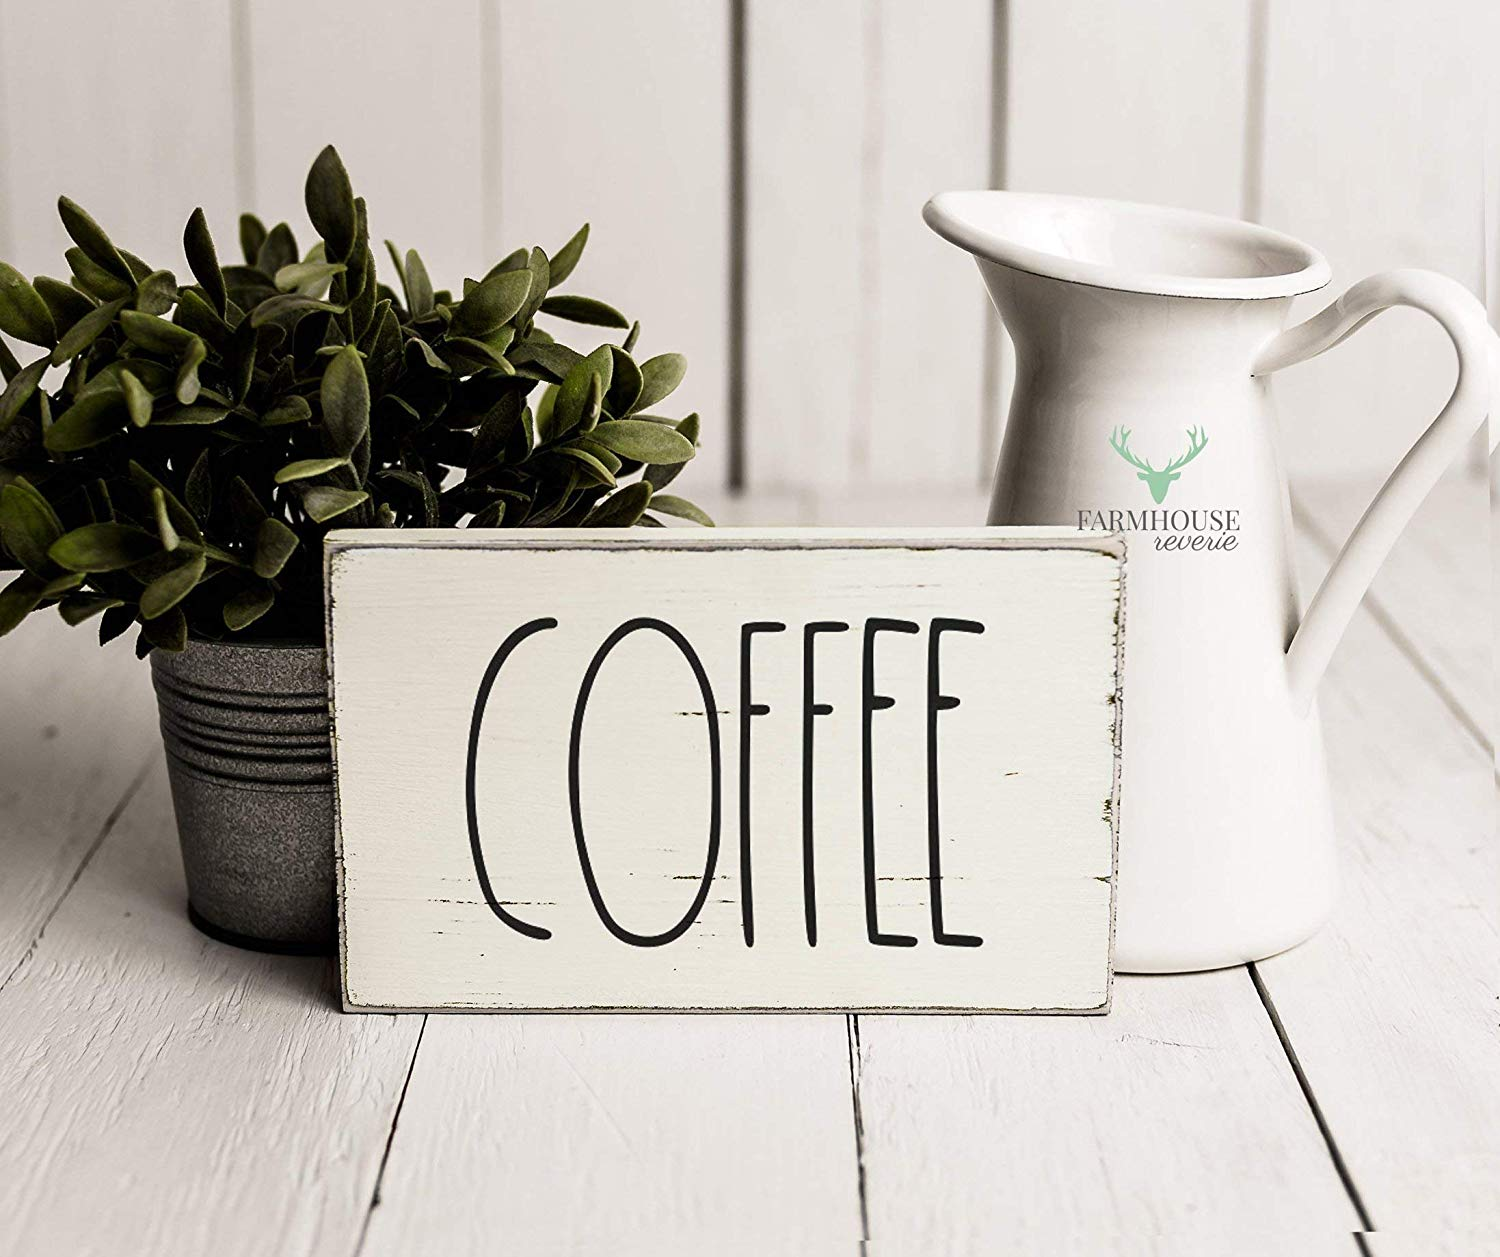 Rustic Coffee Sign | Rustic Wood Sign | Farmhouse Sign | Inspired Rae Dunn Sign | Rustic Home Decor | Farmhouse Home Decor | French Farmhouse Decor | Shabby Chic Decor | Primitive Decor